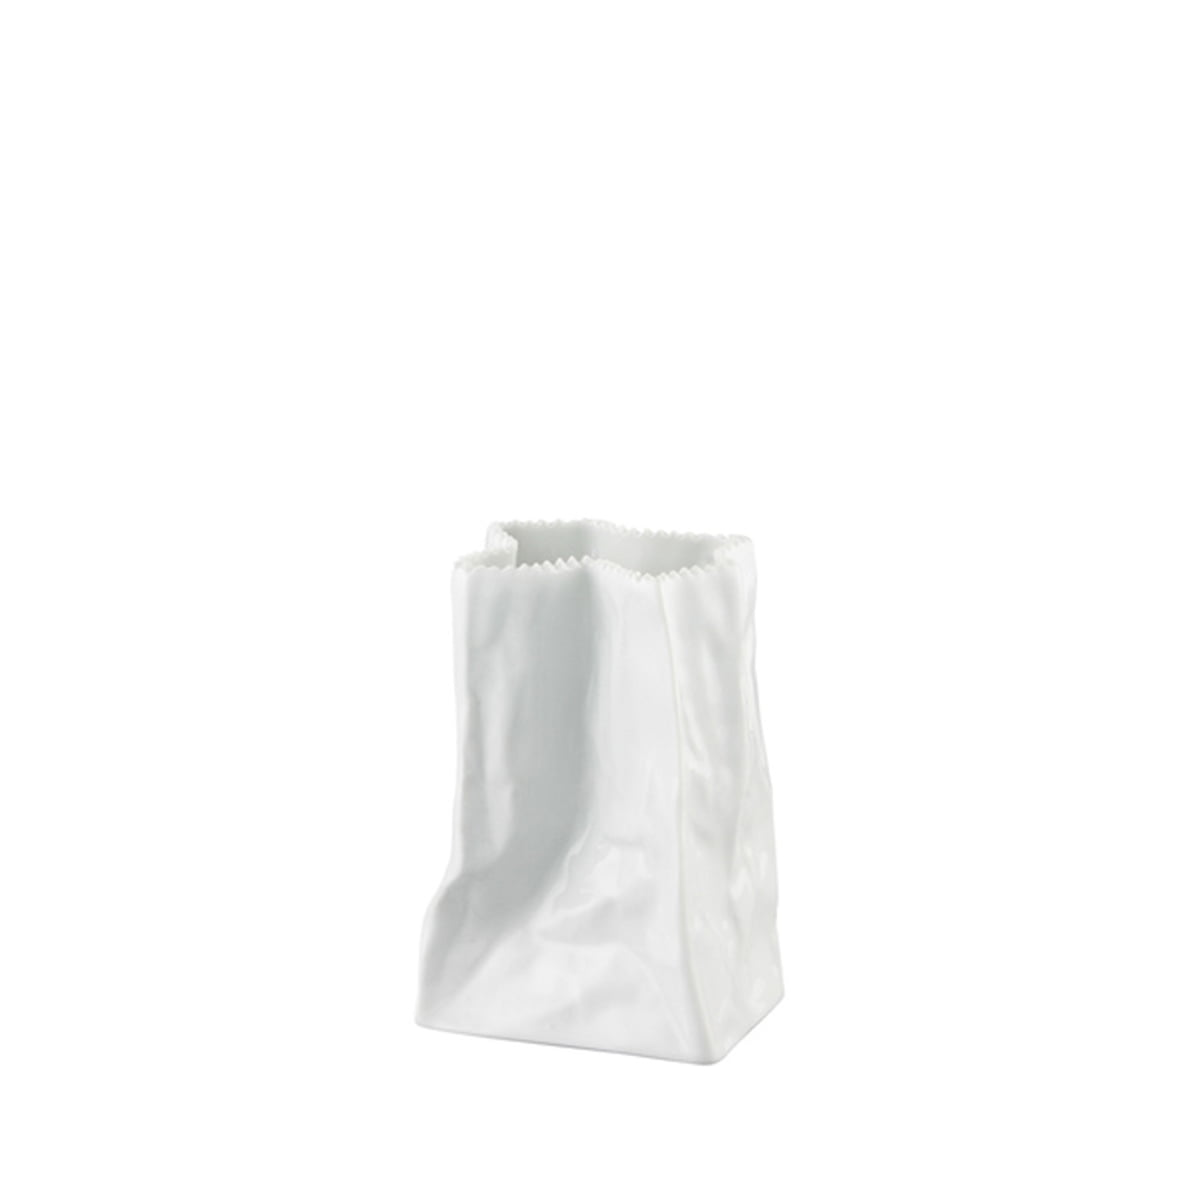 Miniatur bag vase by rosenthal in the shop rosenthal miniatur ttenvase floridaeventfo Gallery